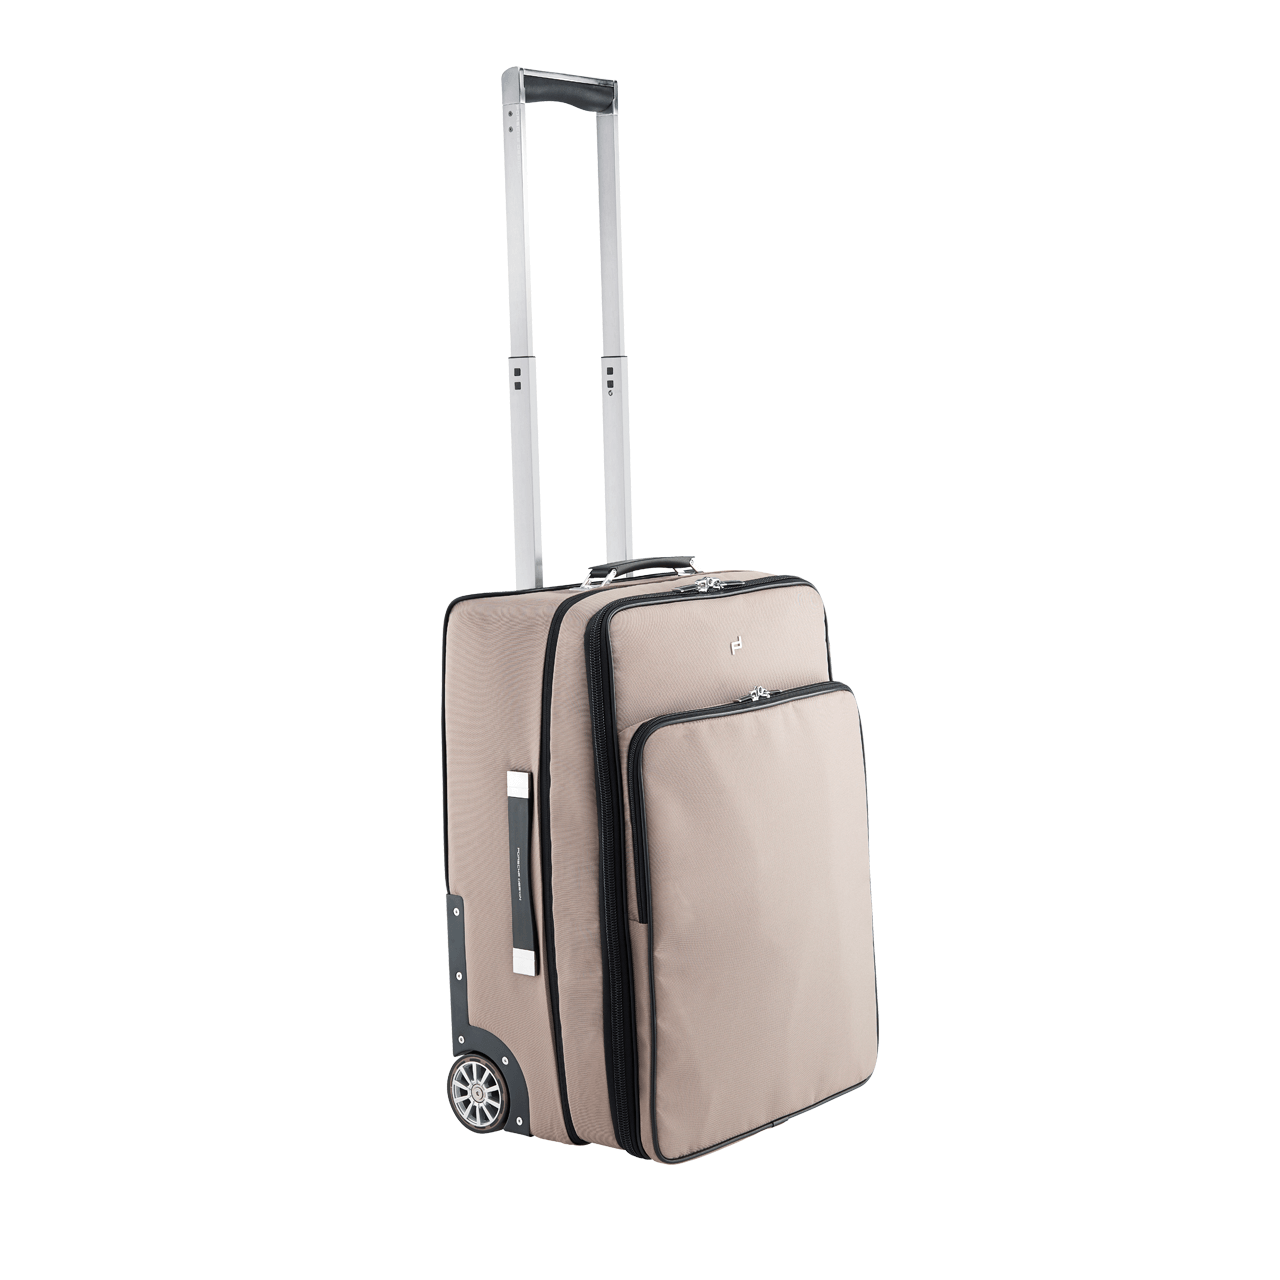 ROADSTER SOFTCASE SERIES TROLLEY 550 - фото 2